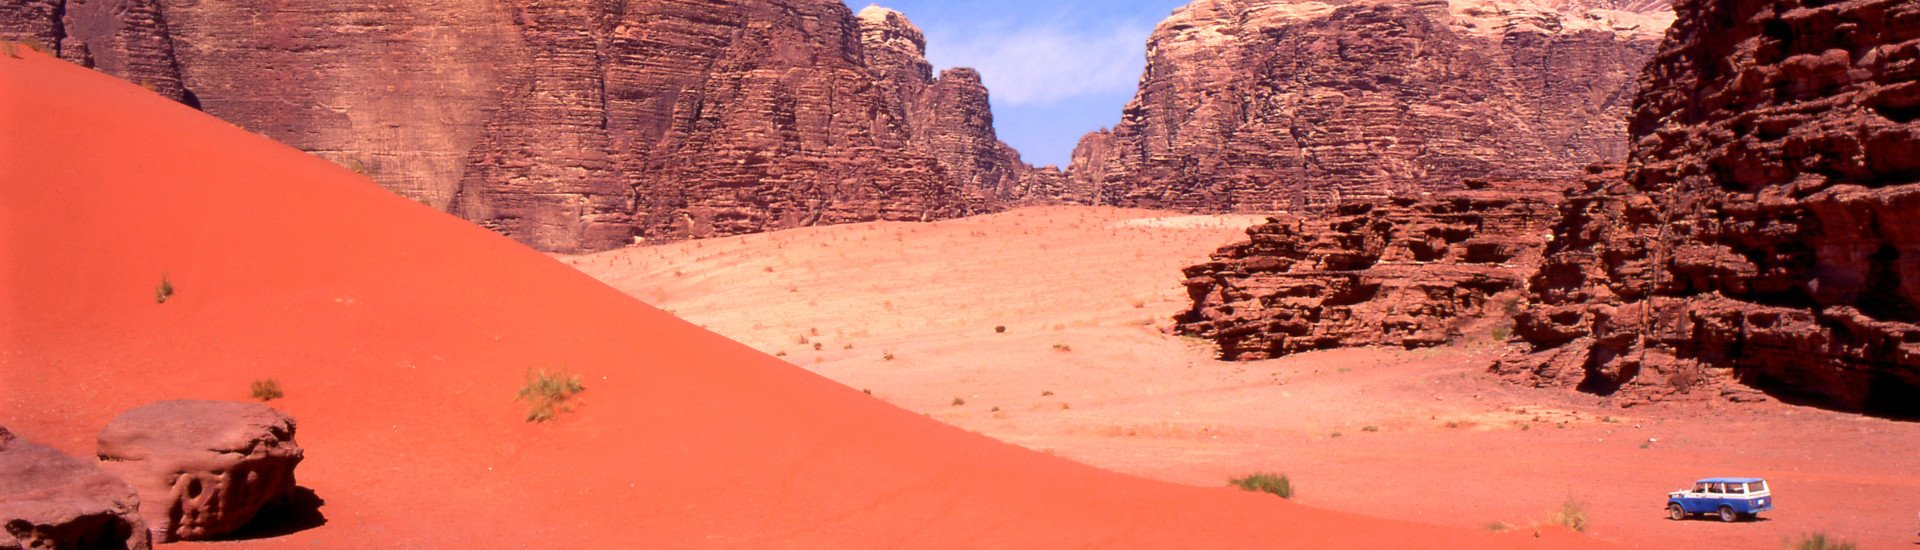 Exploring with a four wheel drive the Wadi rum desert in Jordan